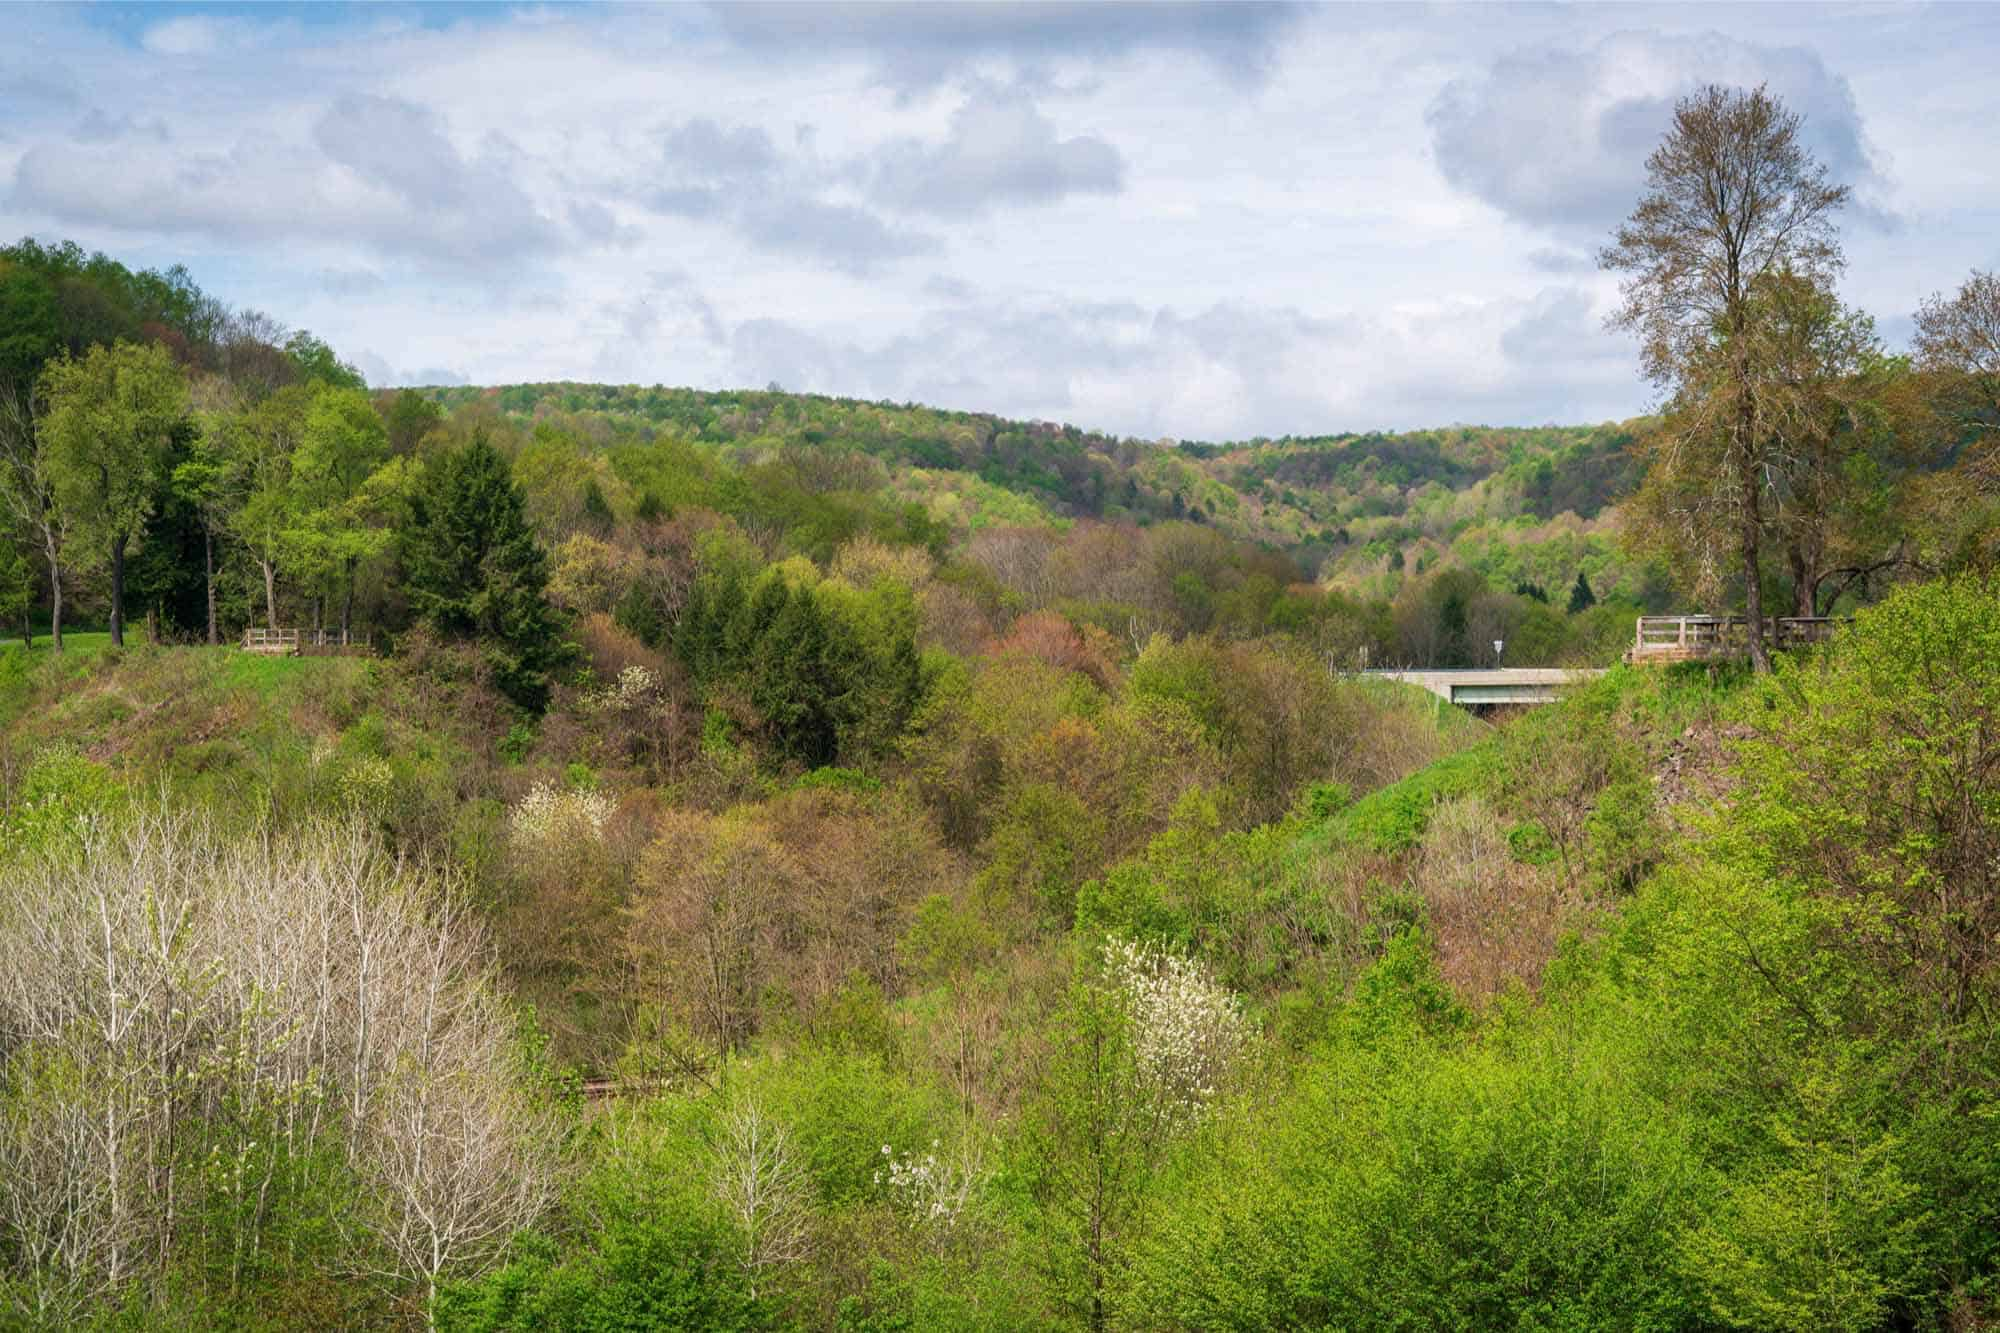 Trees in a valley with a bridge